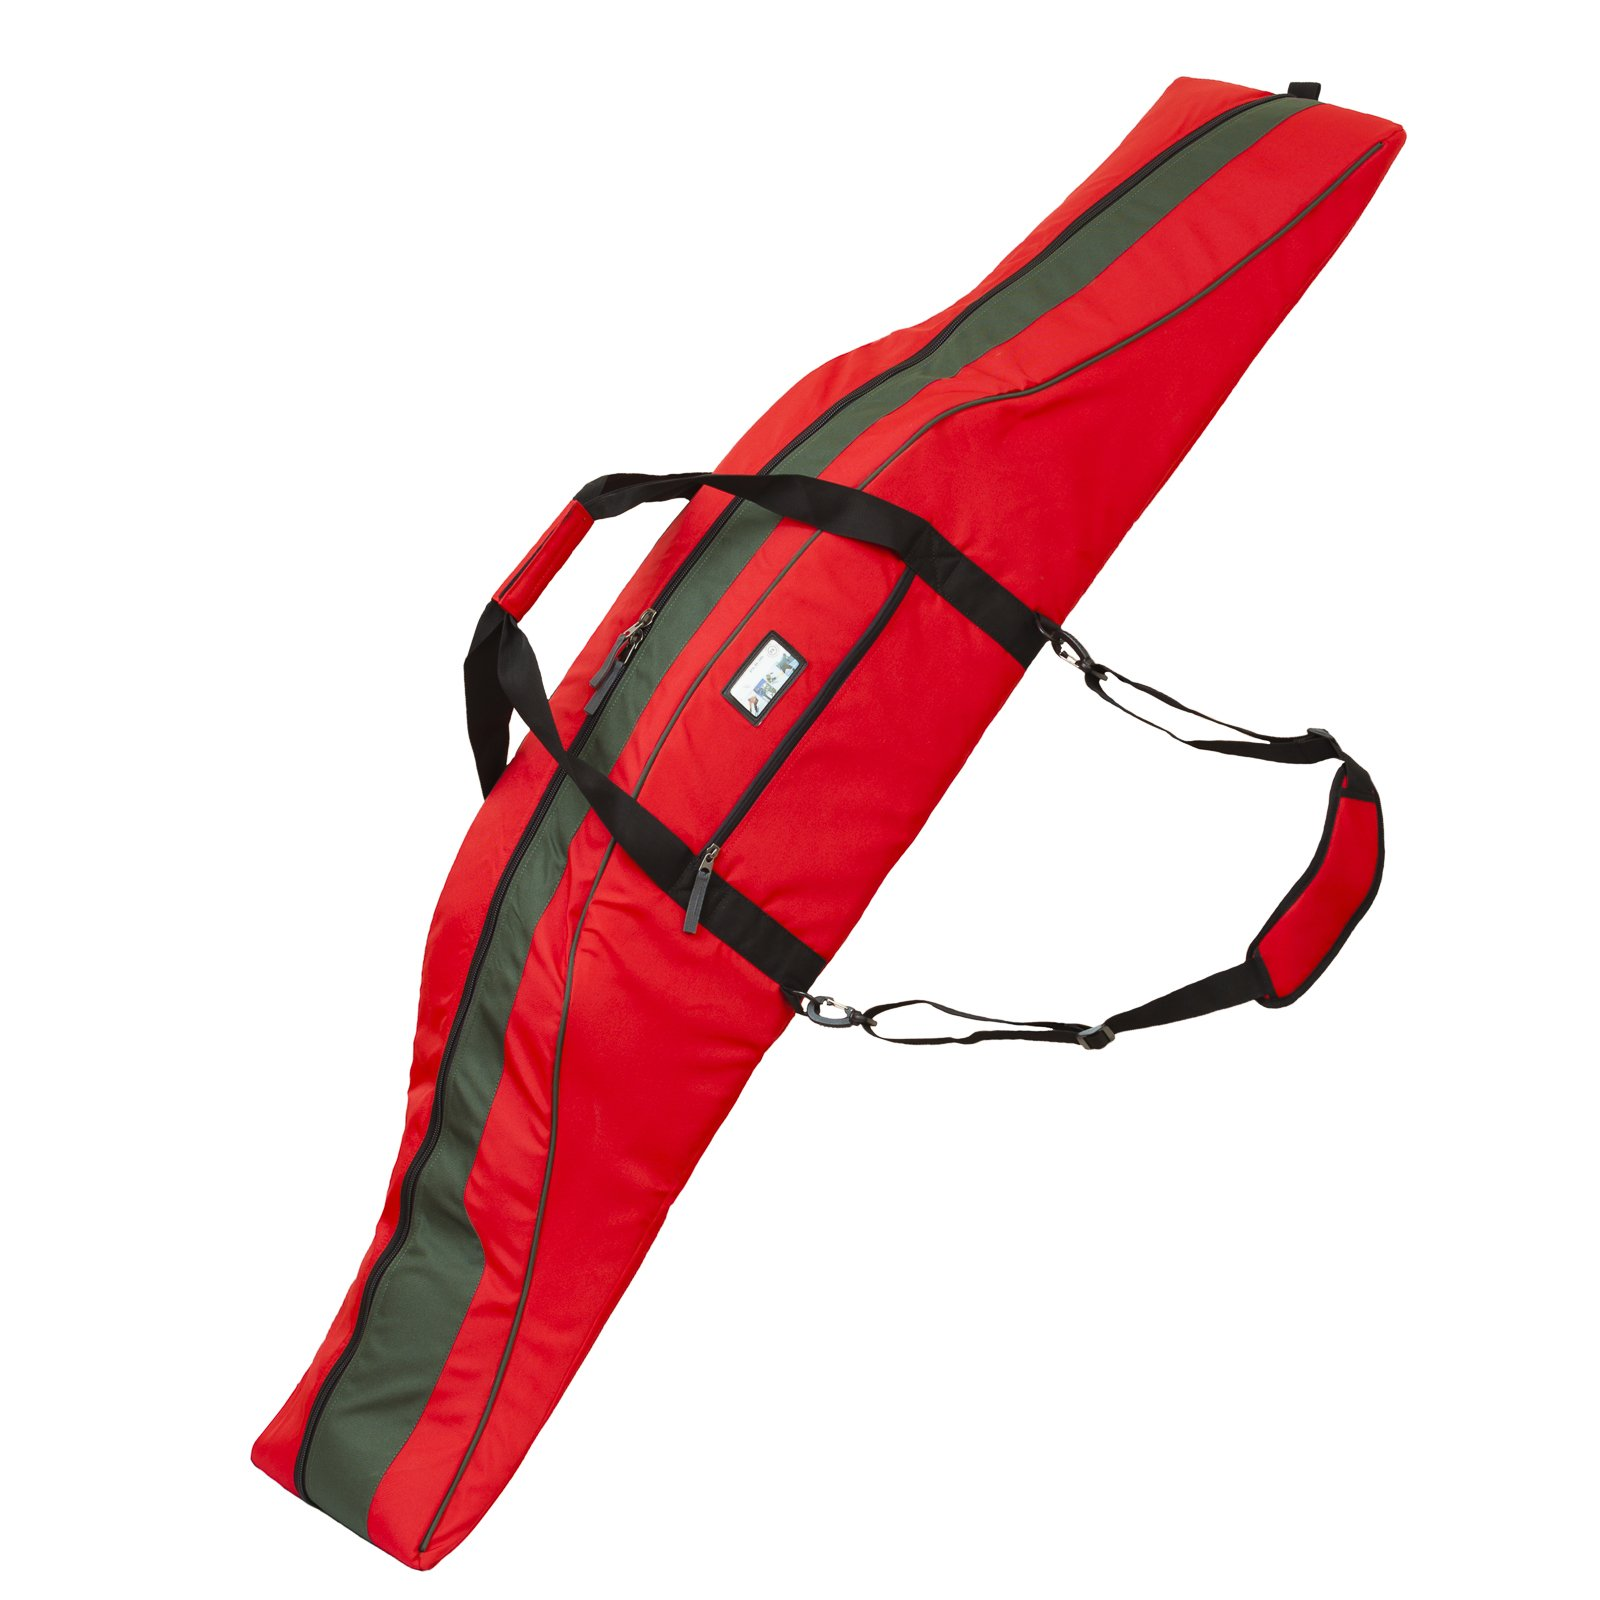 PAUL KURZ Snowboard Bag Pulse for Boards up to 70'' Length Red Black by Paul Kurz